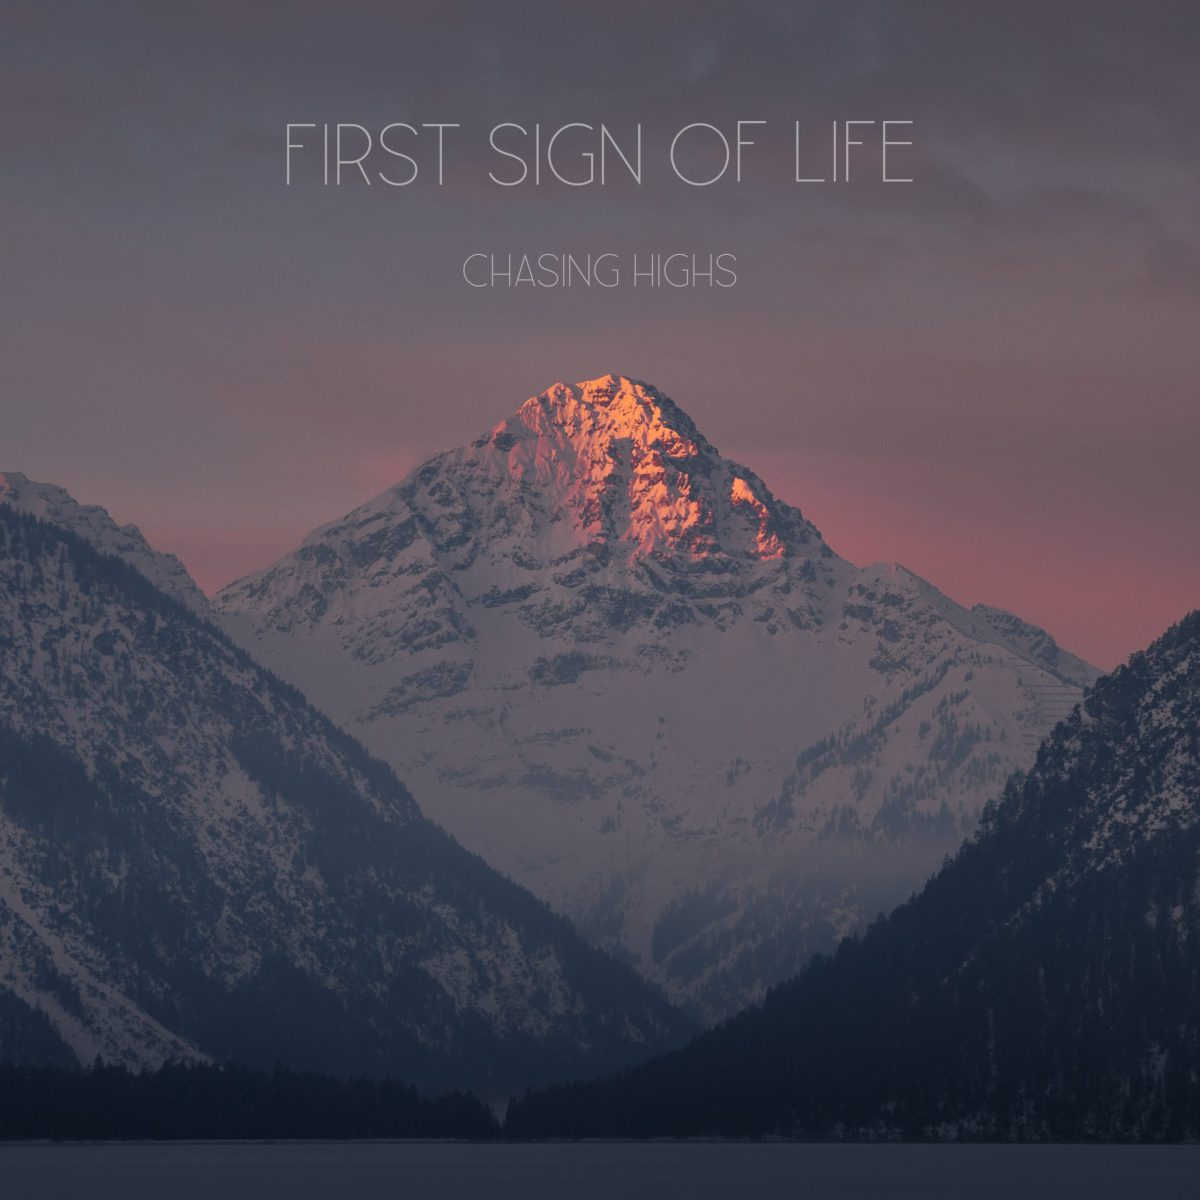 first-sign-of-life-chasing-highs-video-premiere